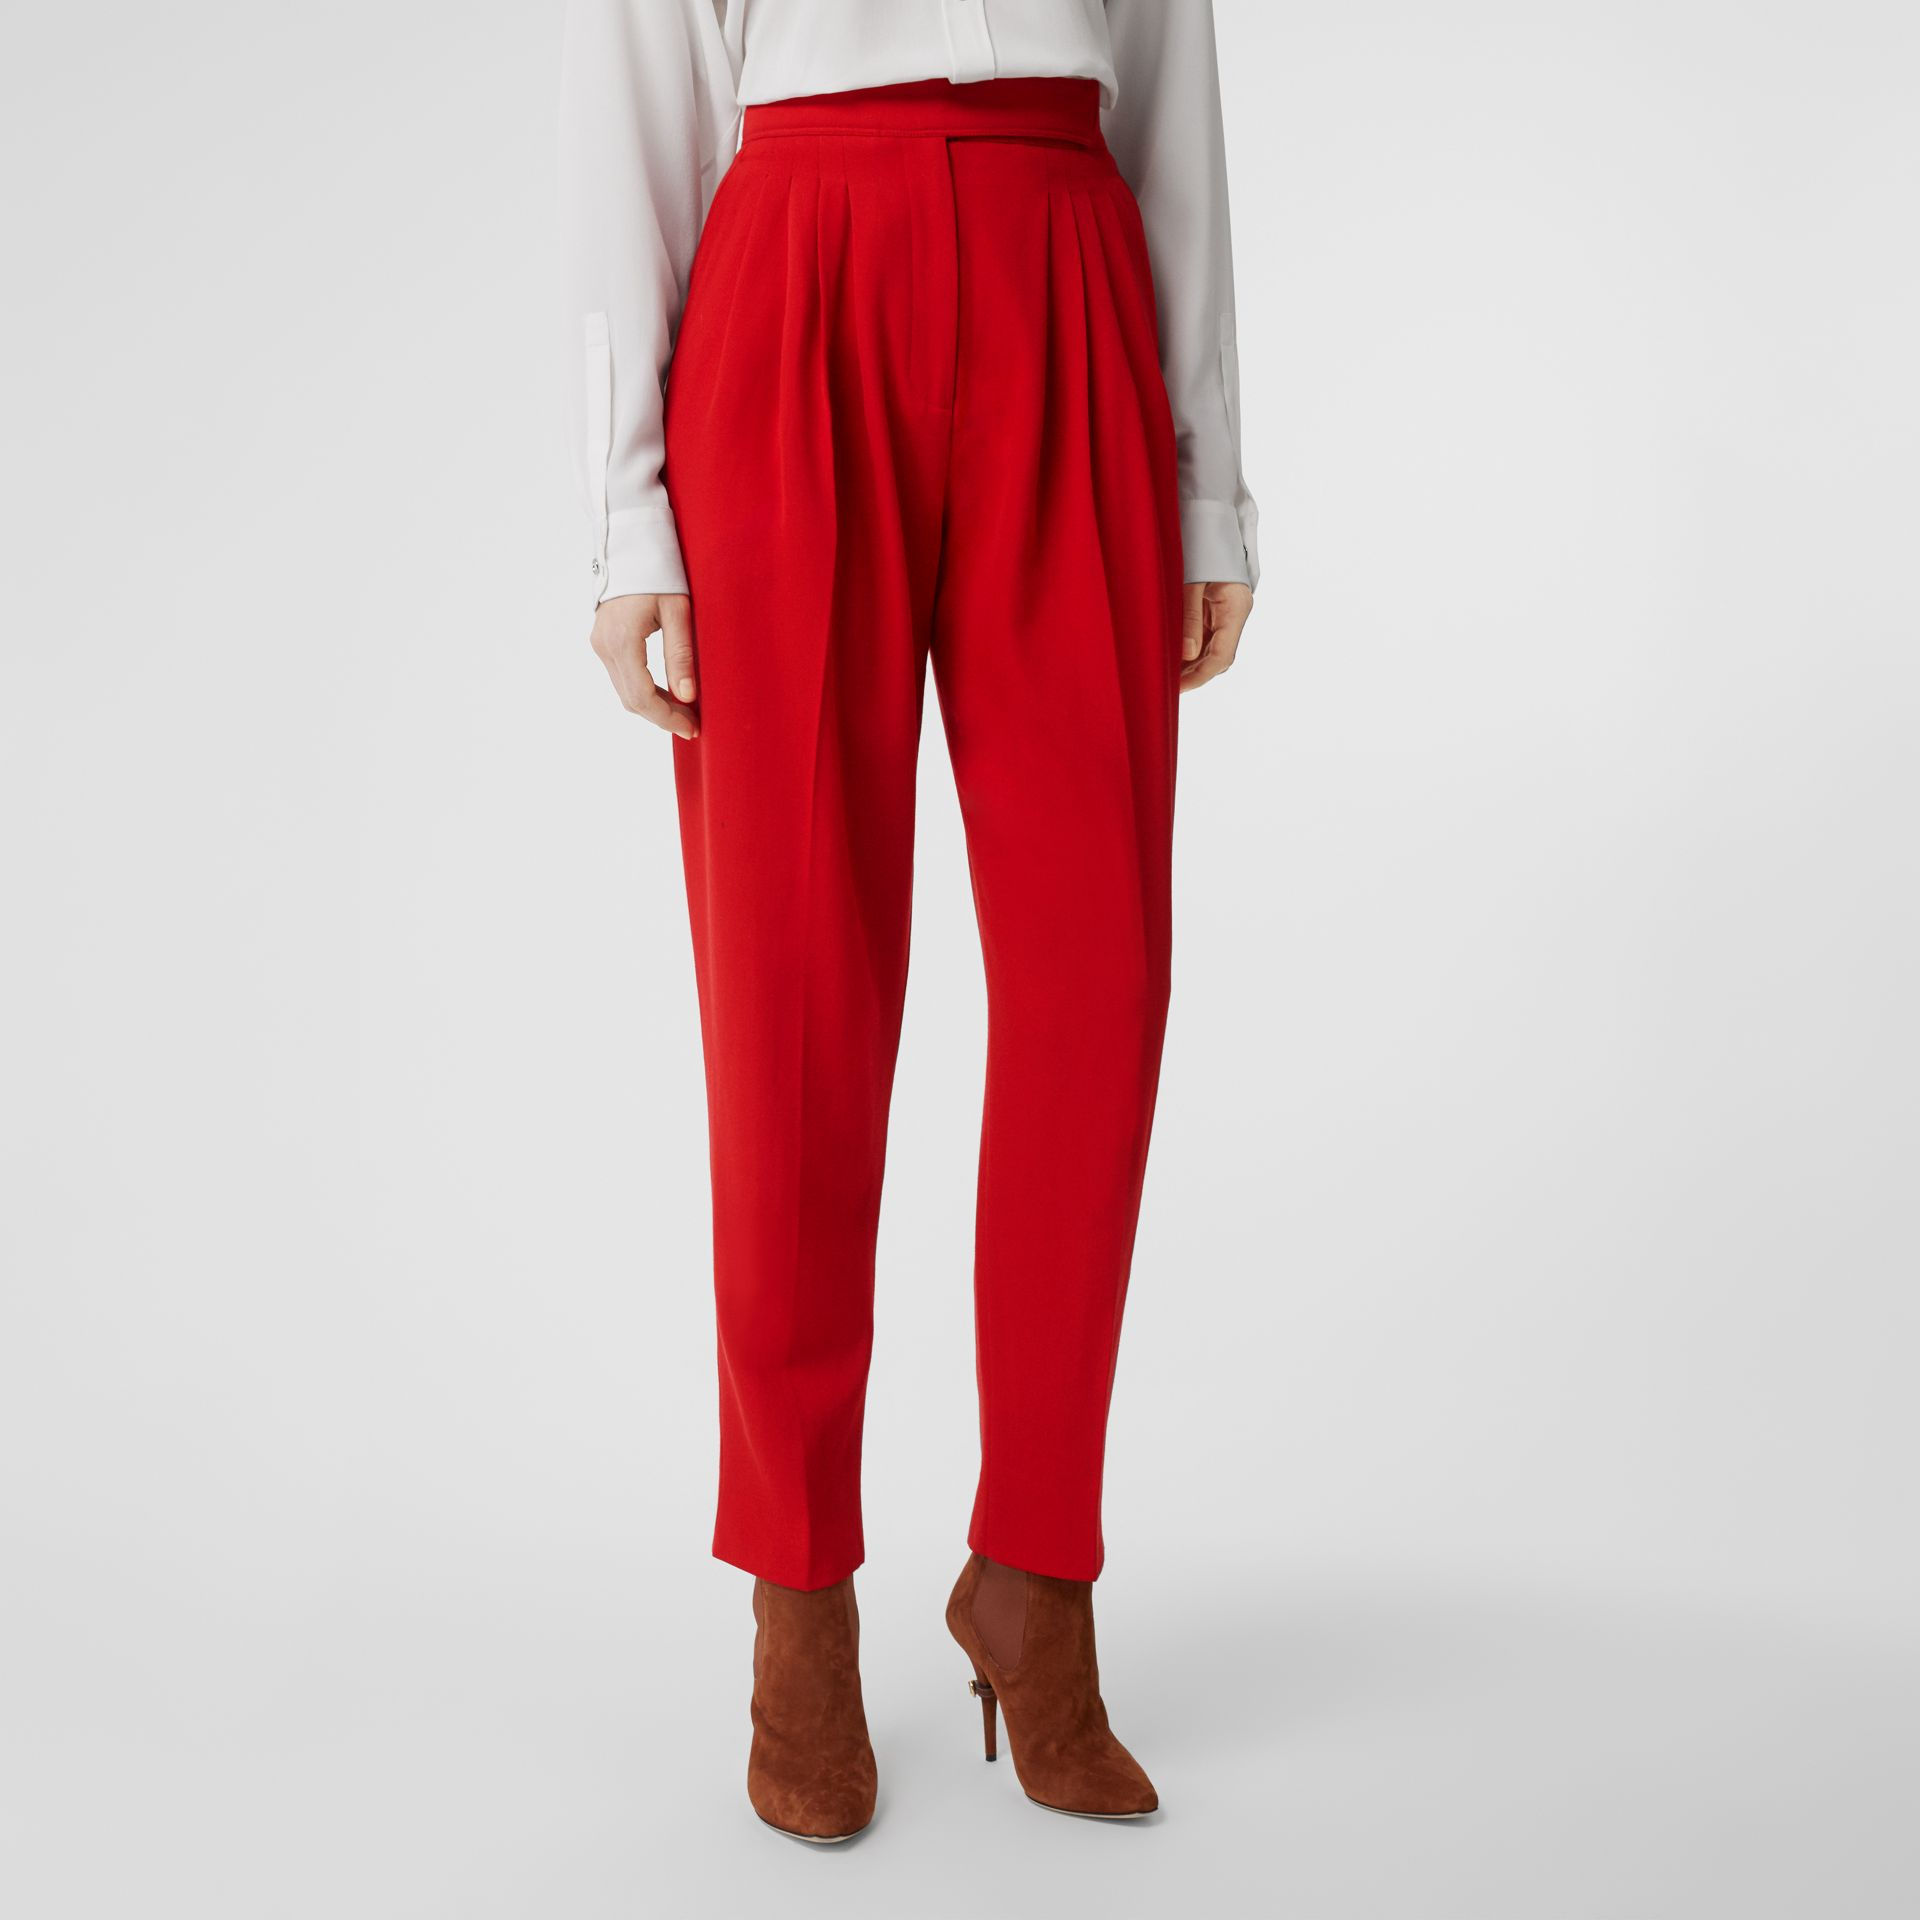 Pleat Detail Wool Tailored Trousers in Bright Red - Women | Burberry - gallery image 3